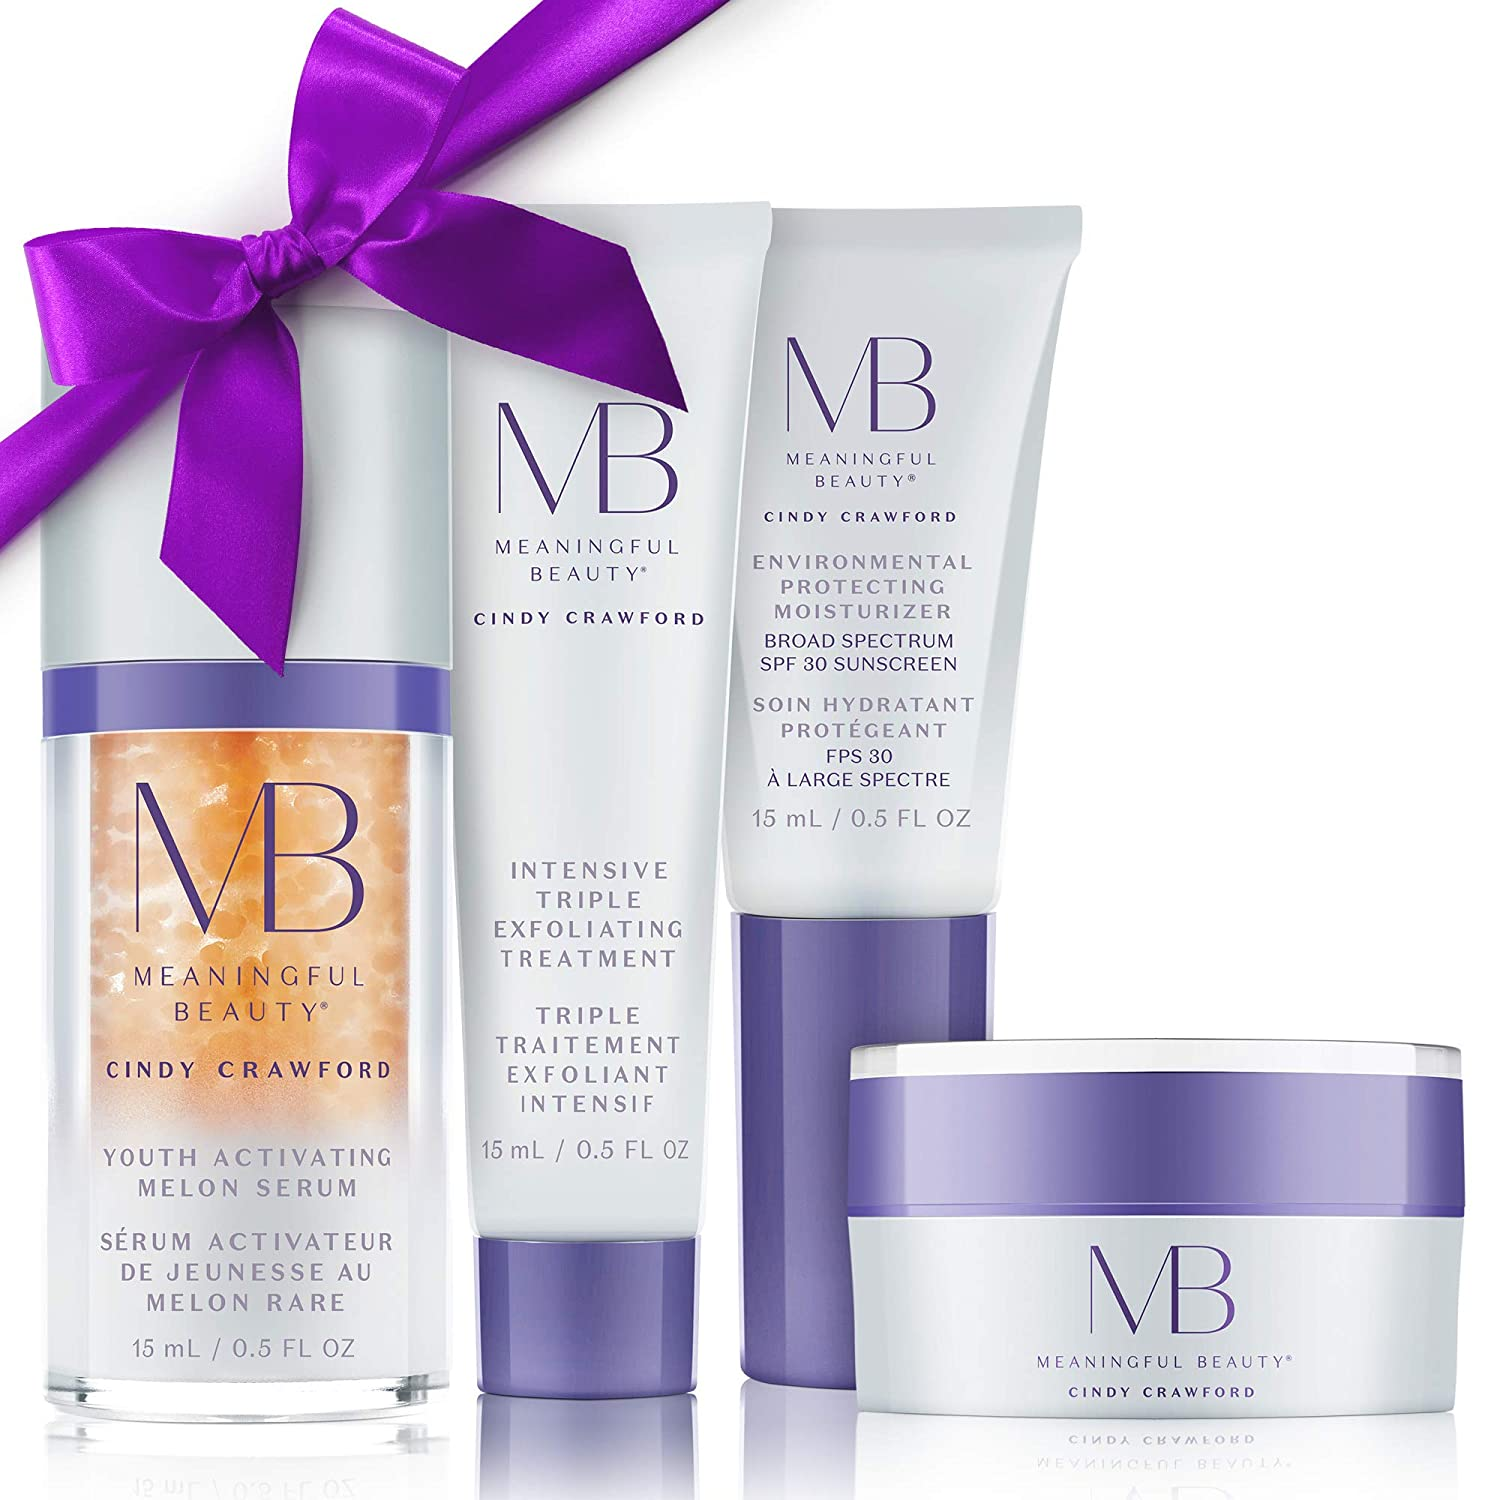 Meaningful BeautyAnti-Aging Daily Skincare System , for Smoothing, Even Skin Tone & Radiance , MT.2110